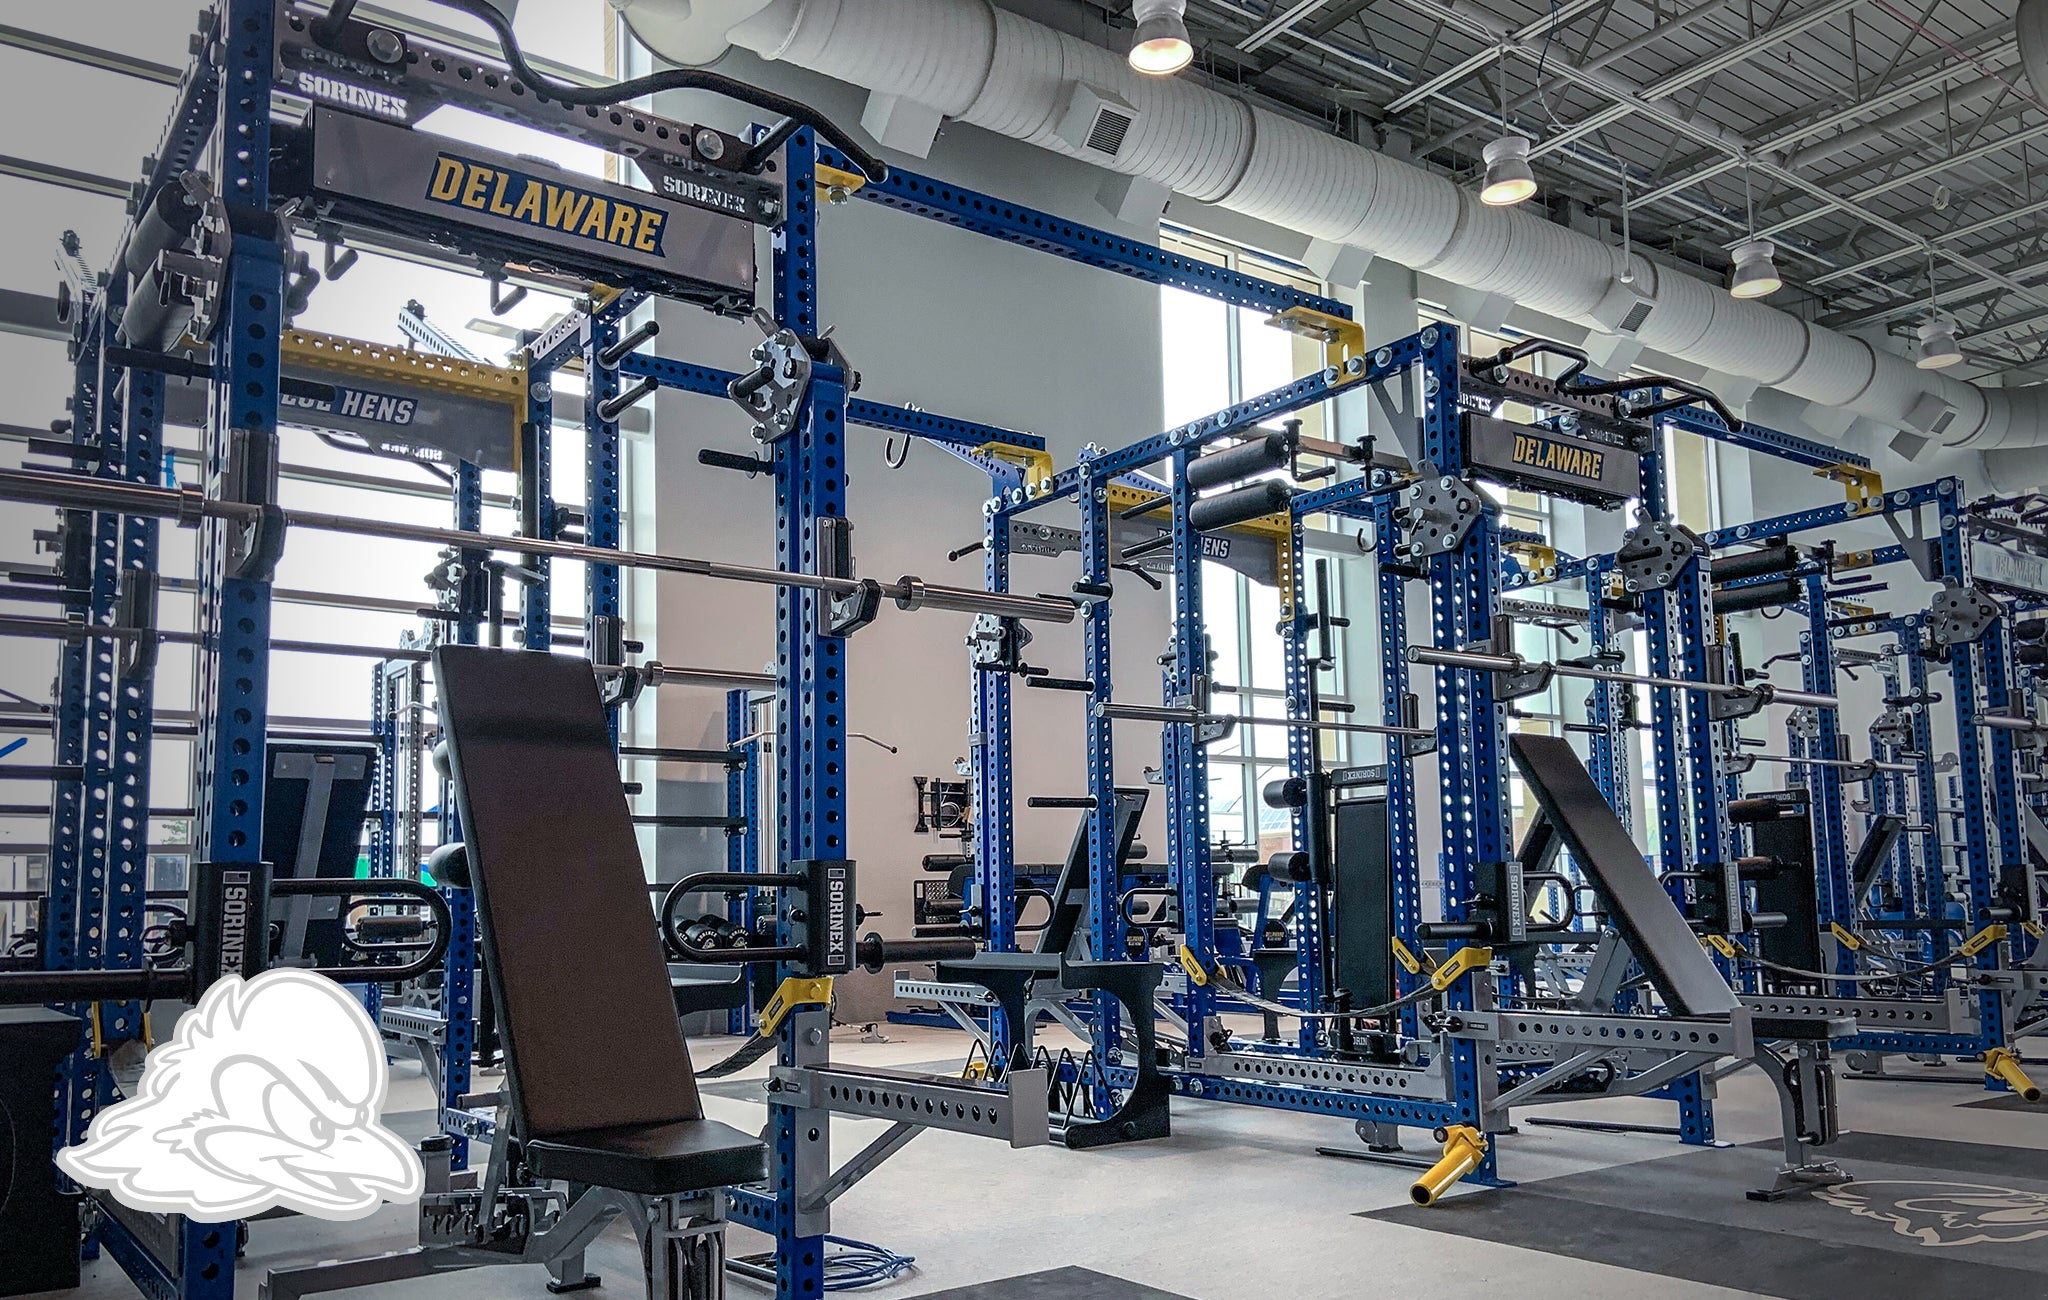 University of Delaware Sorinex strength and conditioning facility